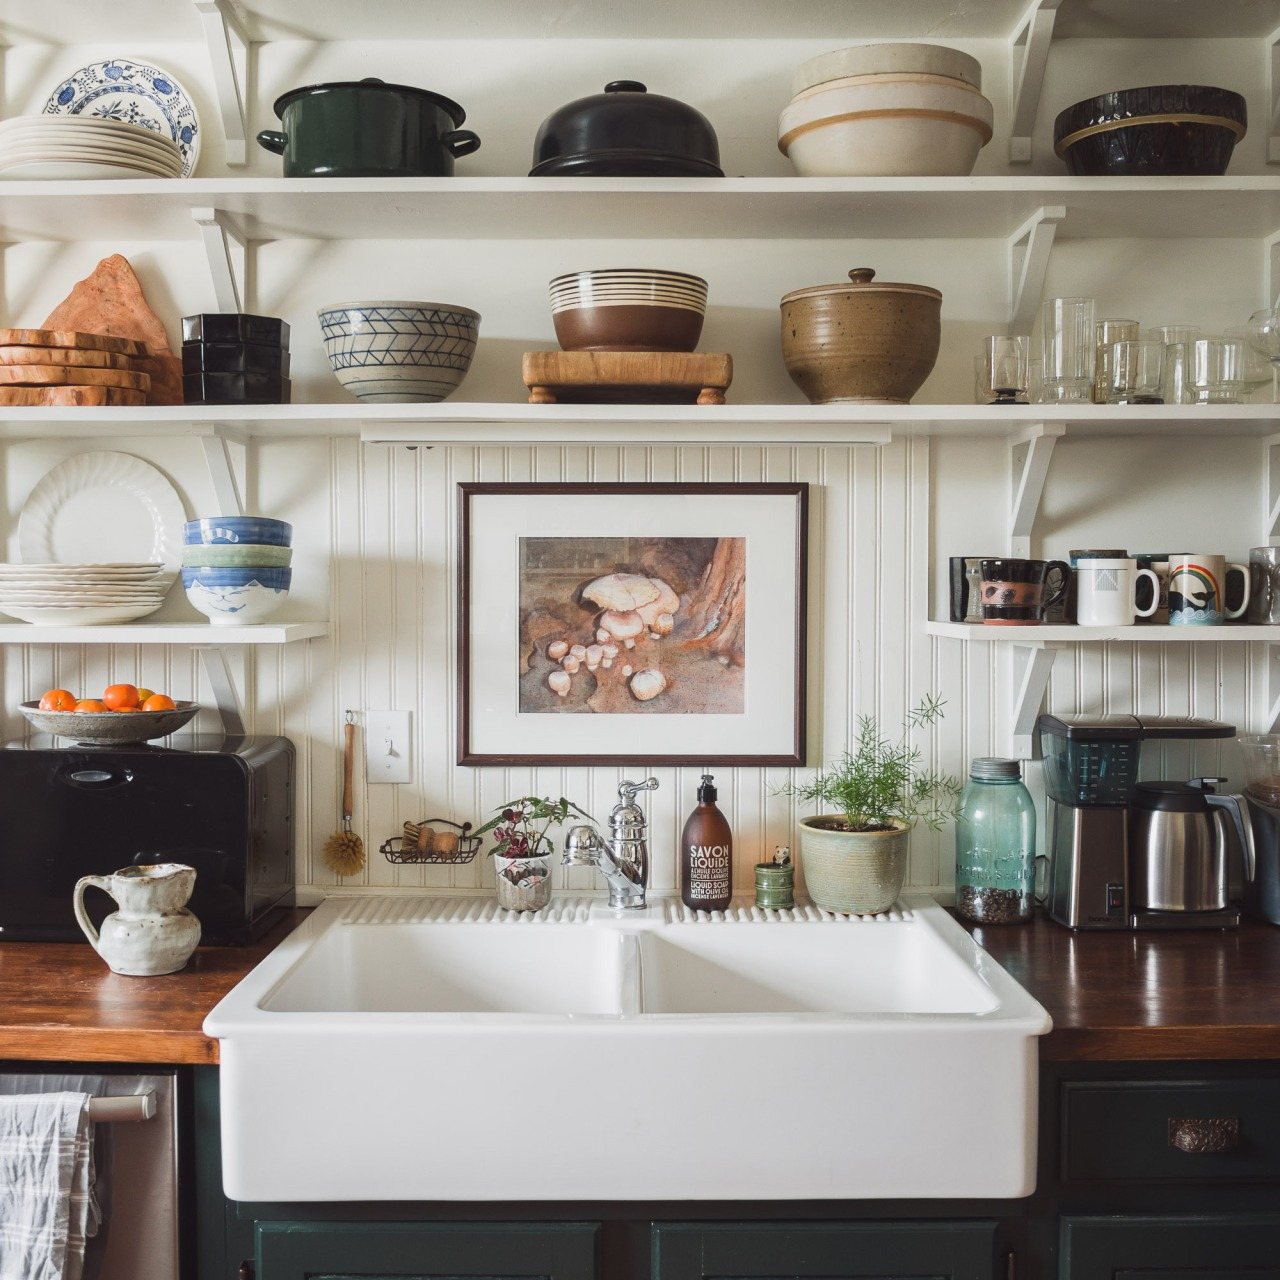 kitchen organising Tumblr Collection #14